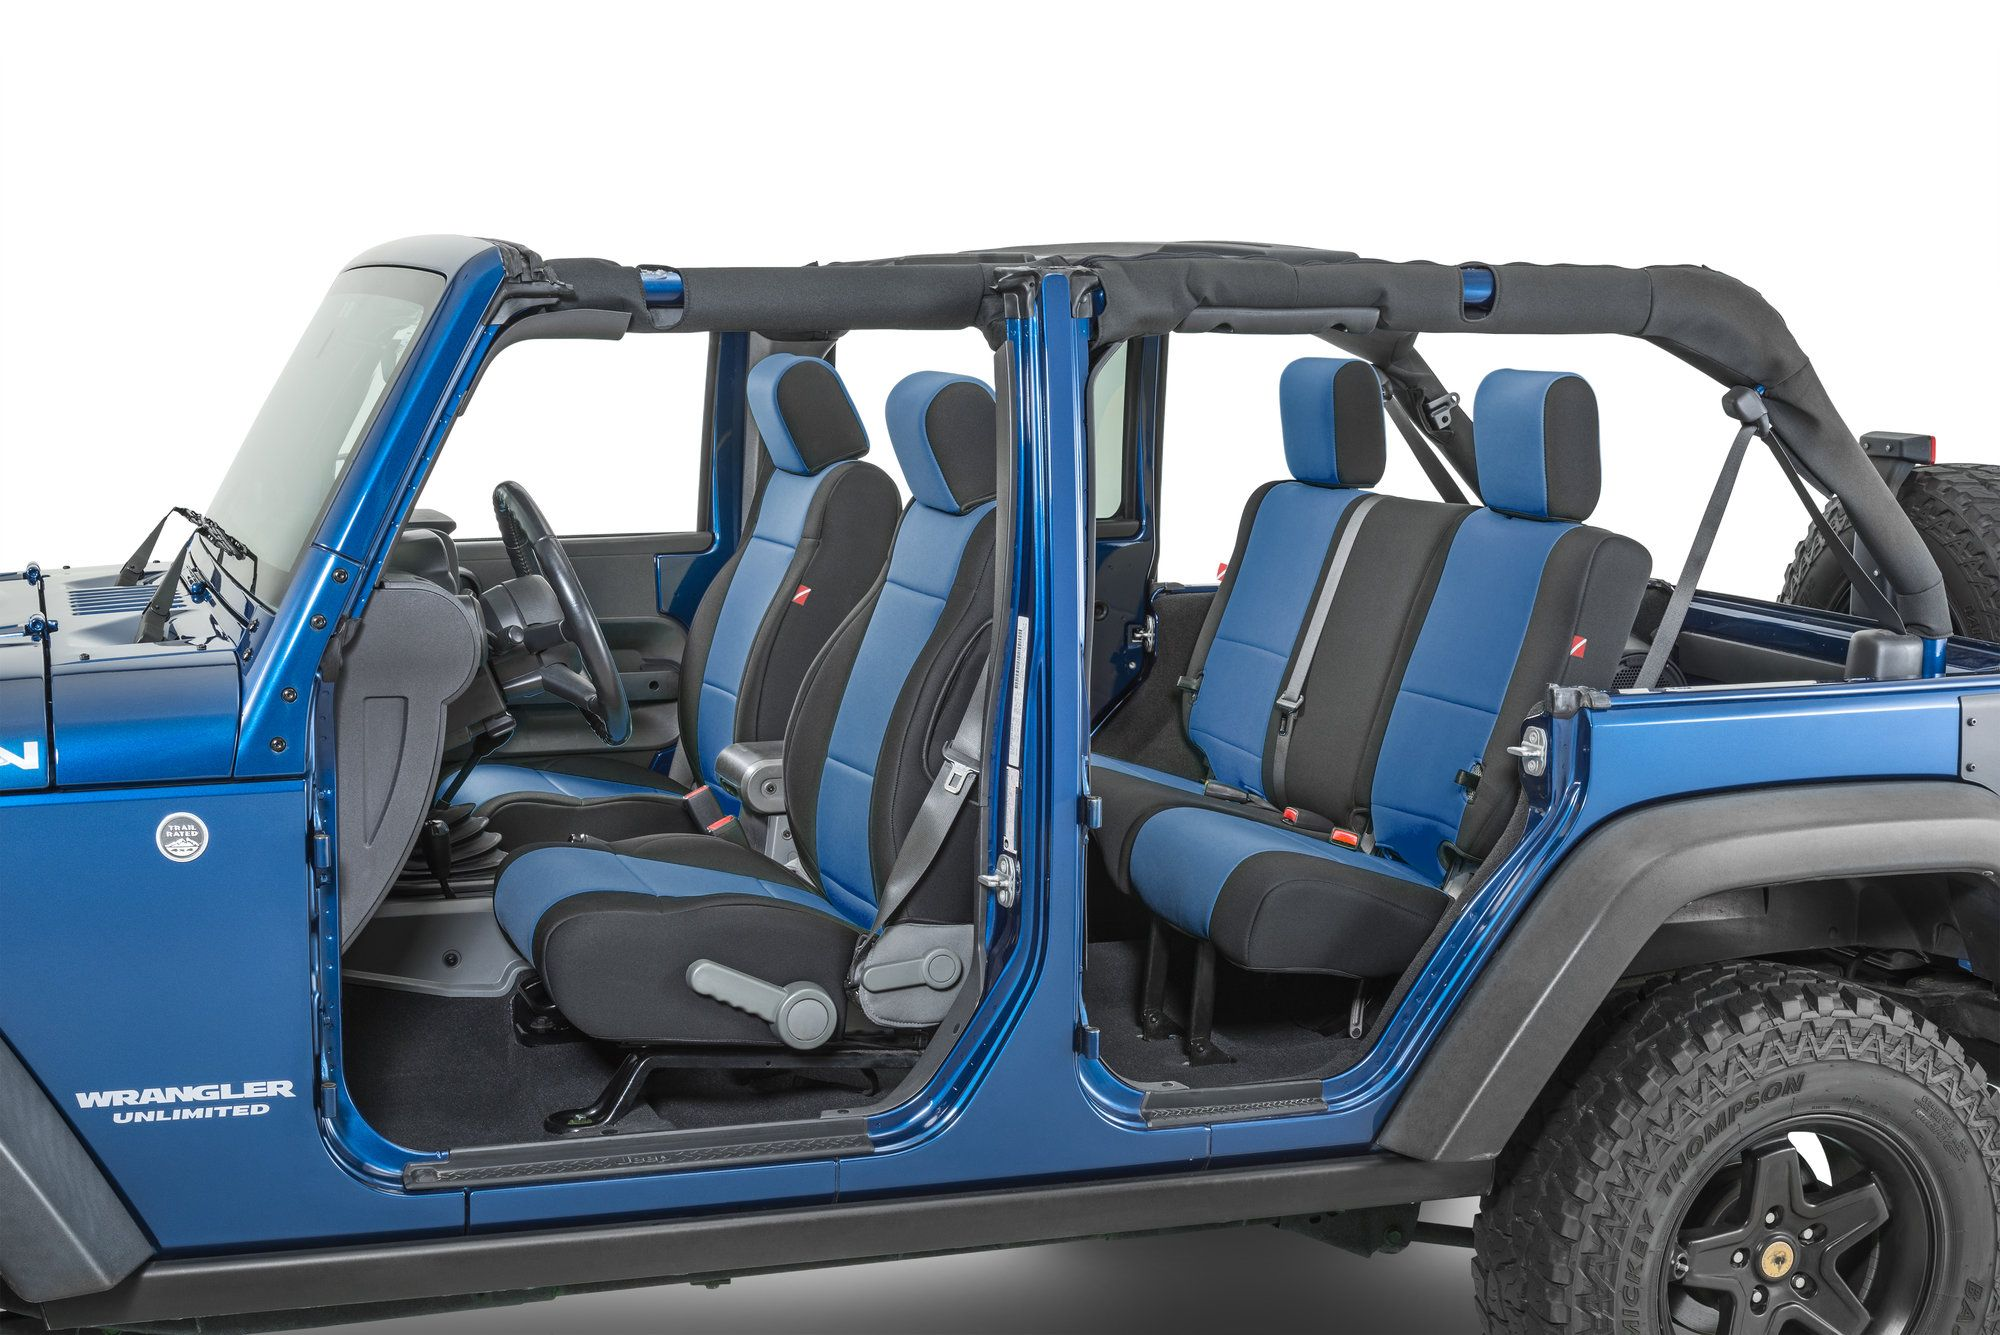 https://www.quadratec.com/p/quadratec/diver-down-neoprene-seat-covers-07-17-wrangler-unlimited-jk#&gid=1&pid=1